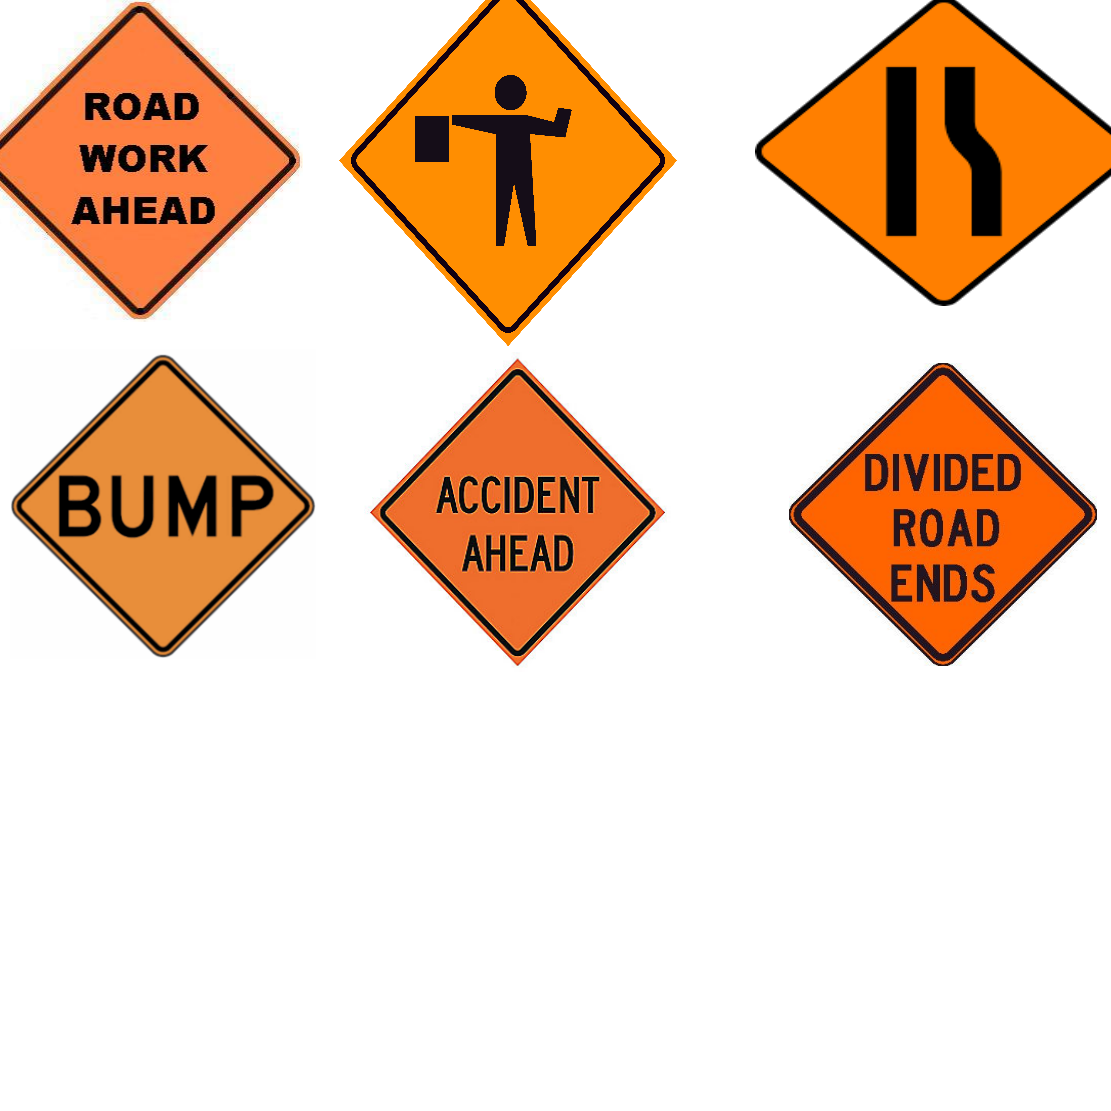 highway construction signs are what color